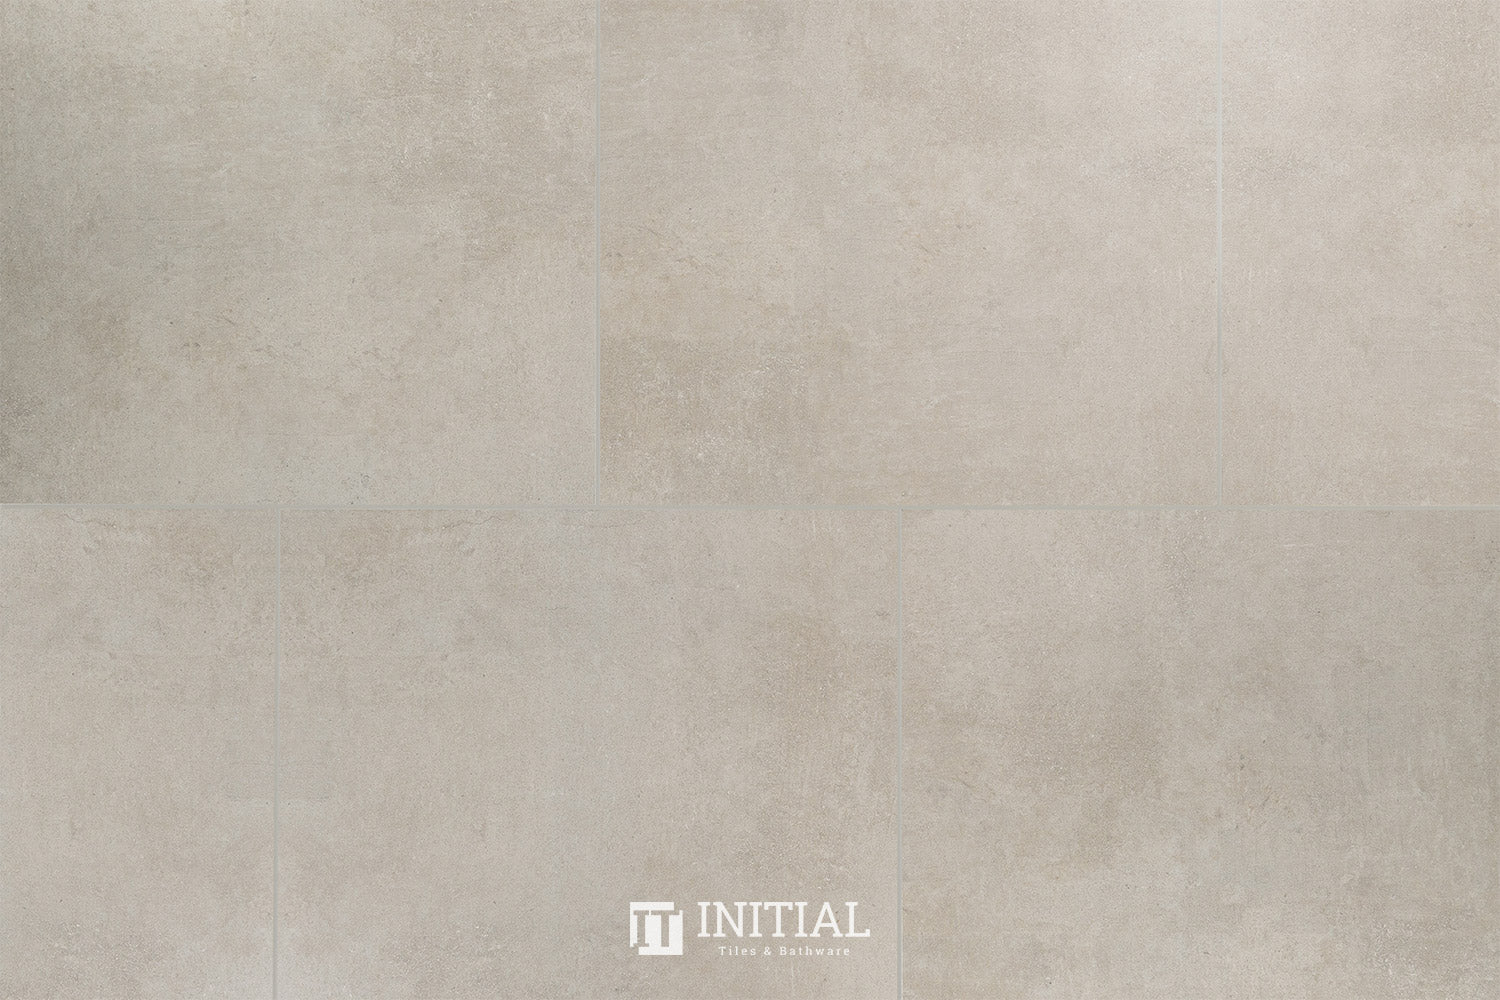 Outdoor Premium Porcelain Tiles Paver Urban Concrete 600X600X20